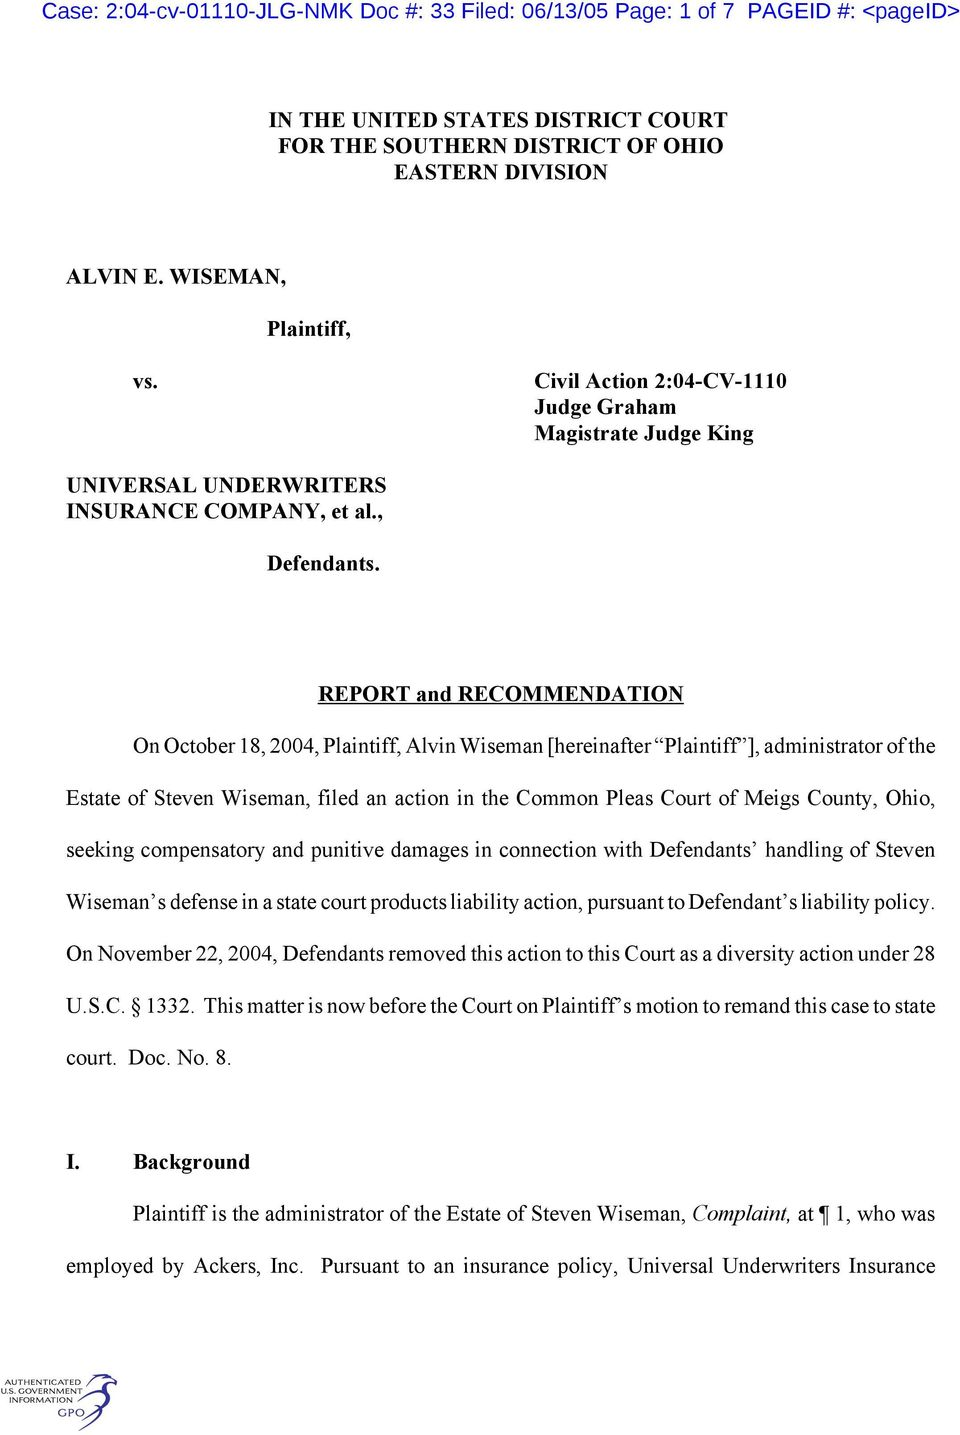 REPORT and RECOMMENDATION On October 18, 2004, Plaintiff, Alvin Wiseman [hereinafter Plaintiff ], administrator of the Estate of Steven Wiseman, filed an action in the Common Pleas Court of Meigs